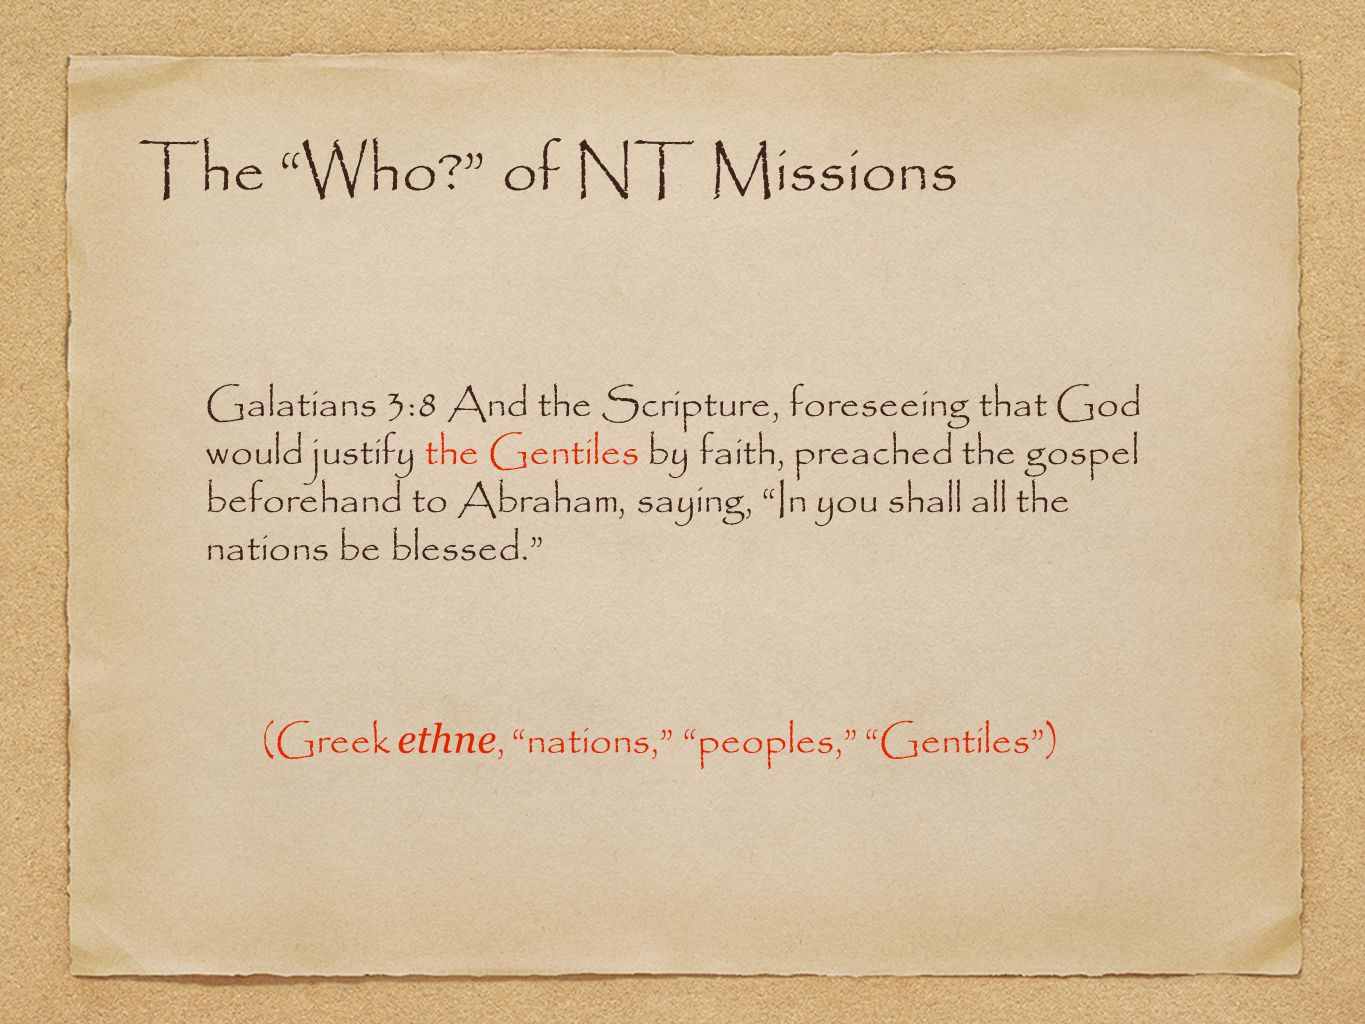 The Who? of NT Missions Galatians 3:8 And the Scripture, foreseeing that God would justify the Gentiles by faith, preached the gospel beforehand to Abraham, saying, In you shall all the nations be blessed. (Greek ethne, nations, peoples, Gentiles )